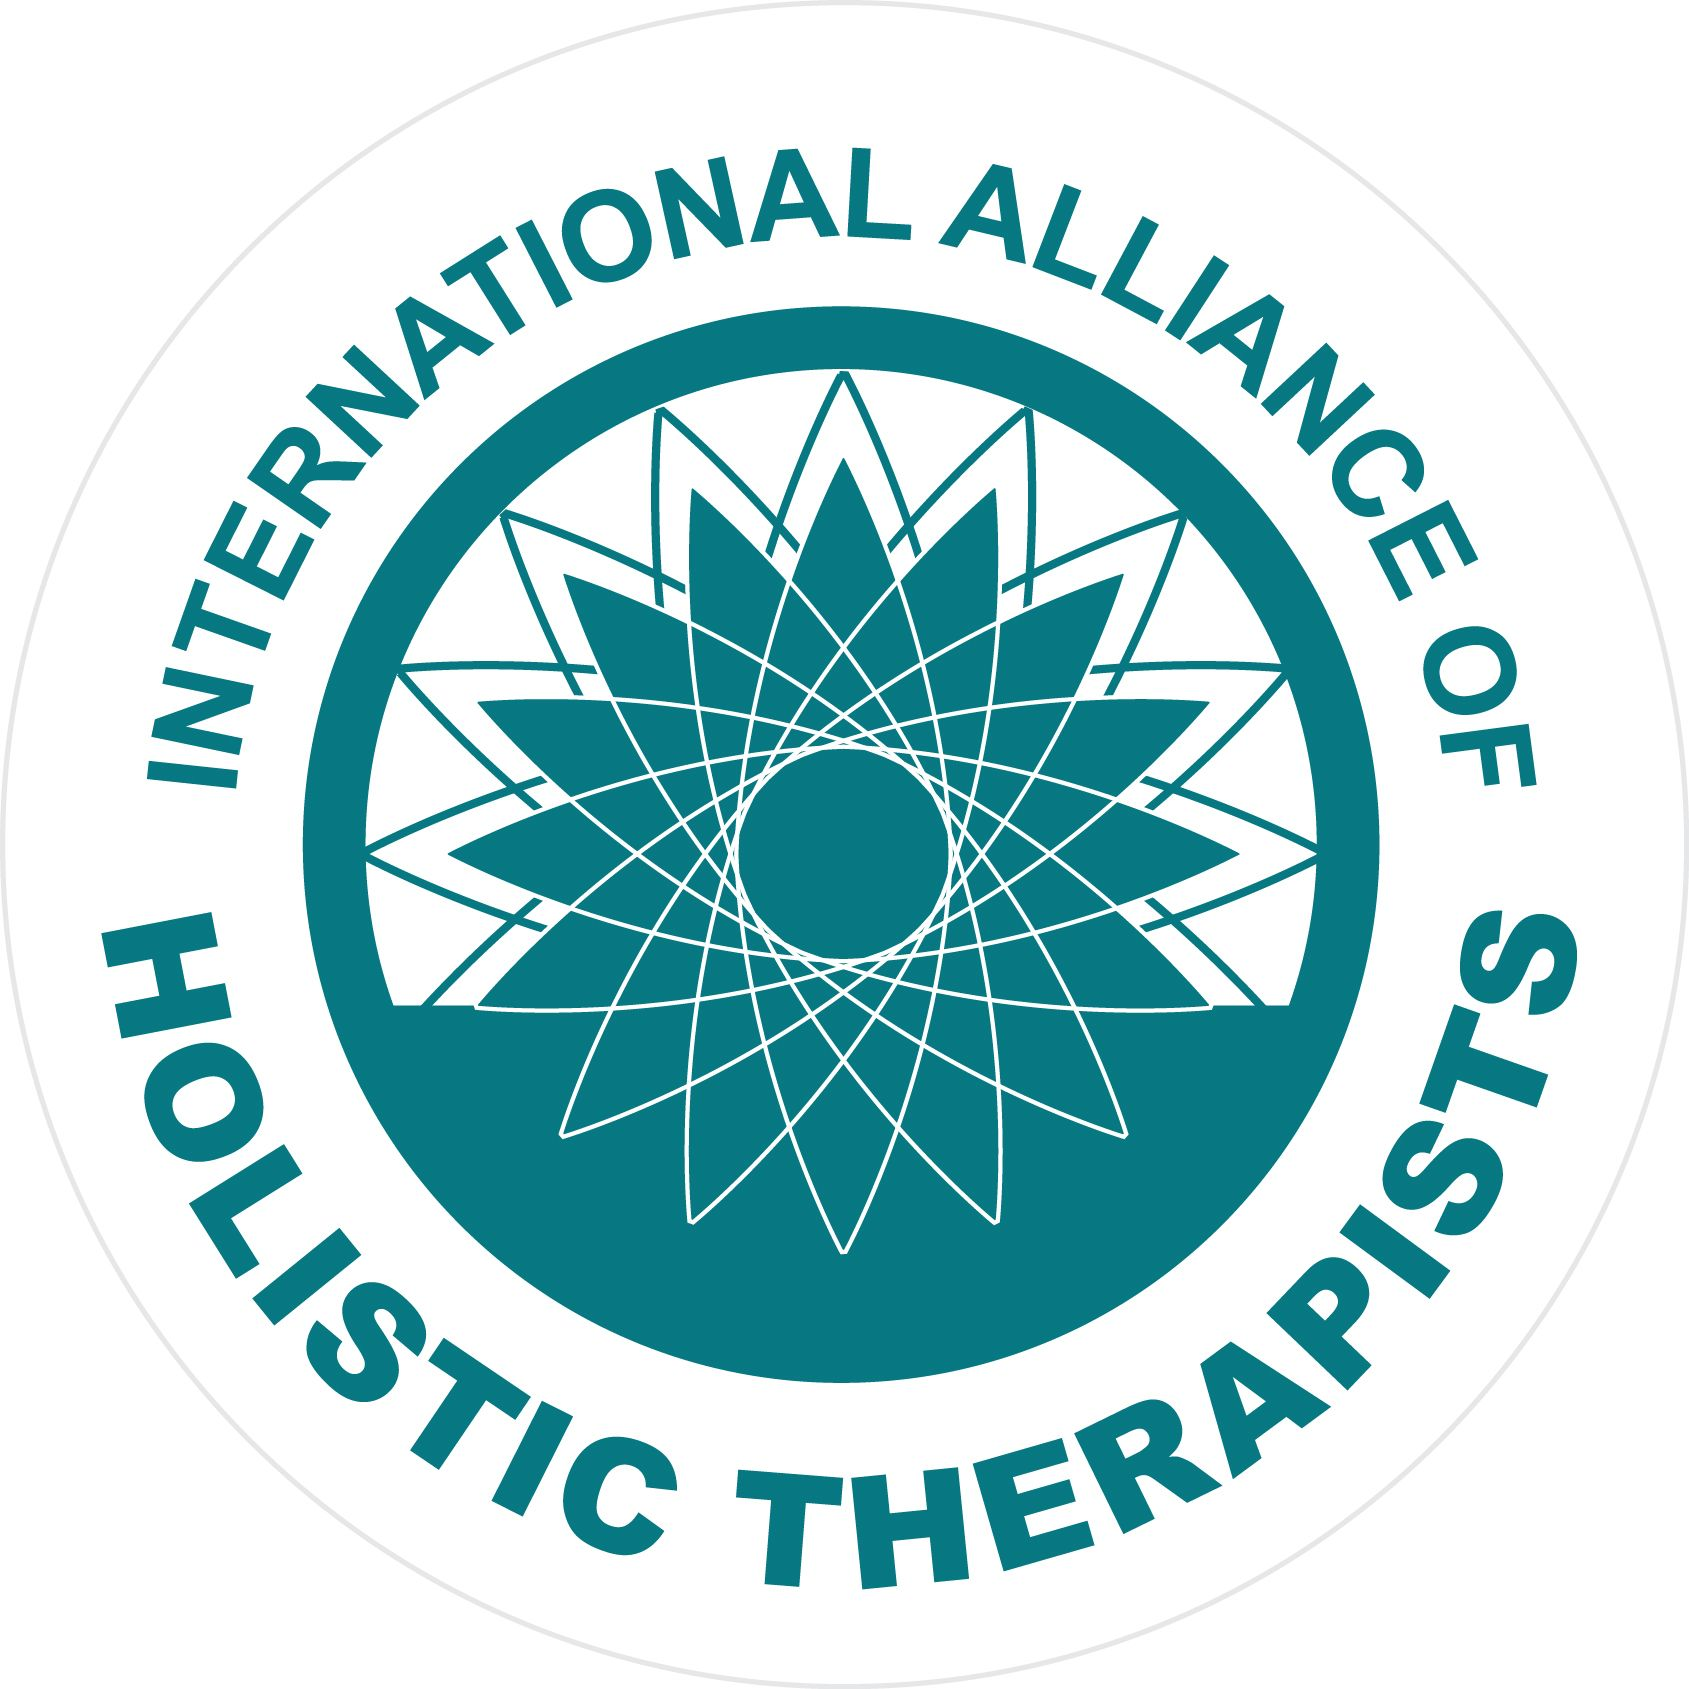 International+Alliance+of+Holistic+Thera